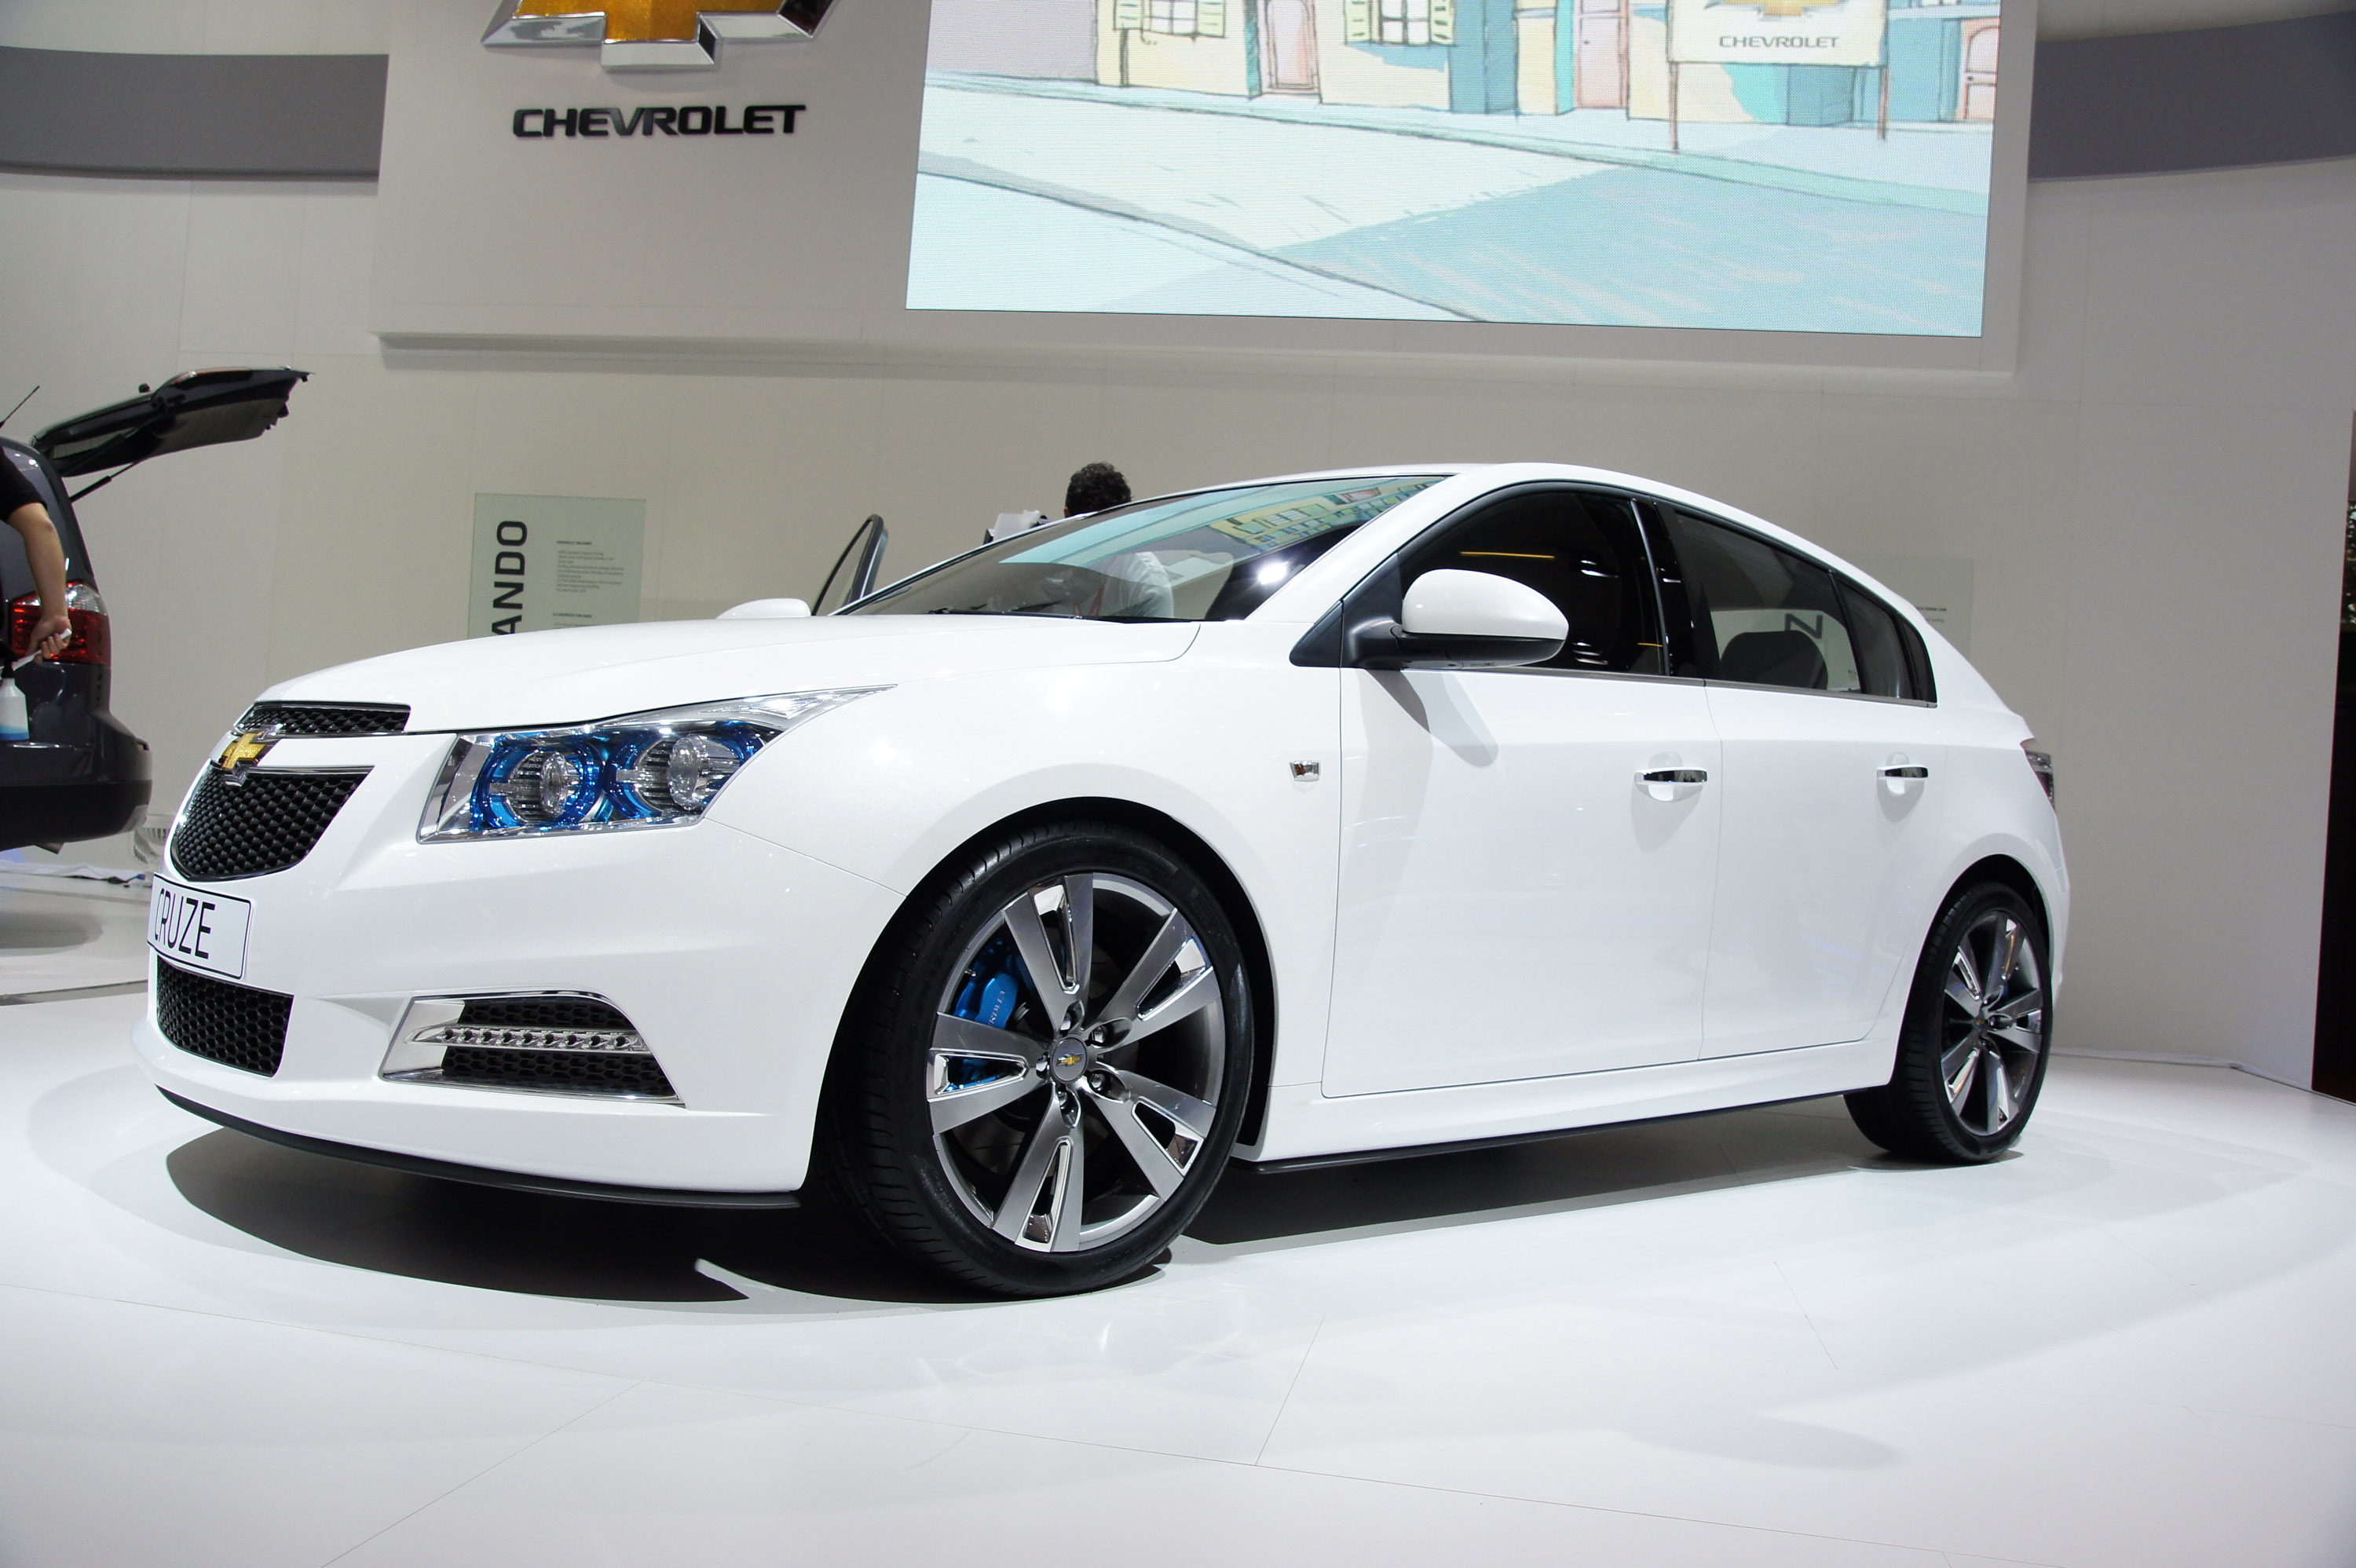 Chevrolet Cruze Paris 2010 Picture 43179